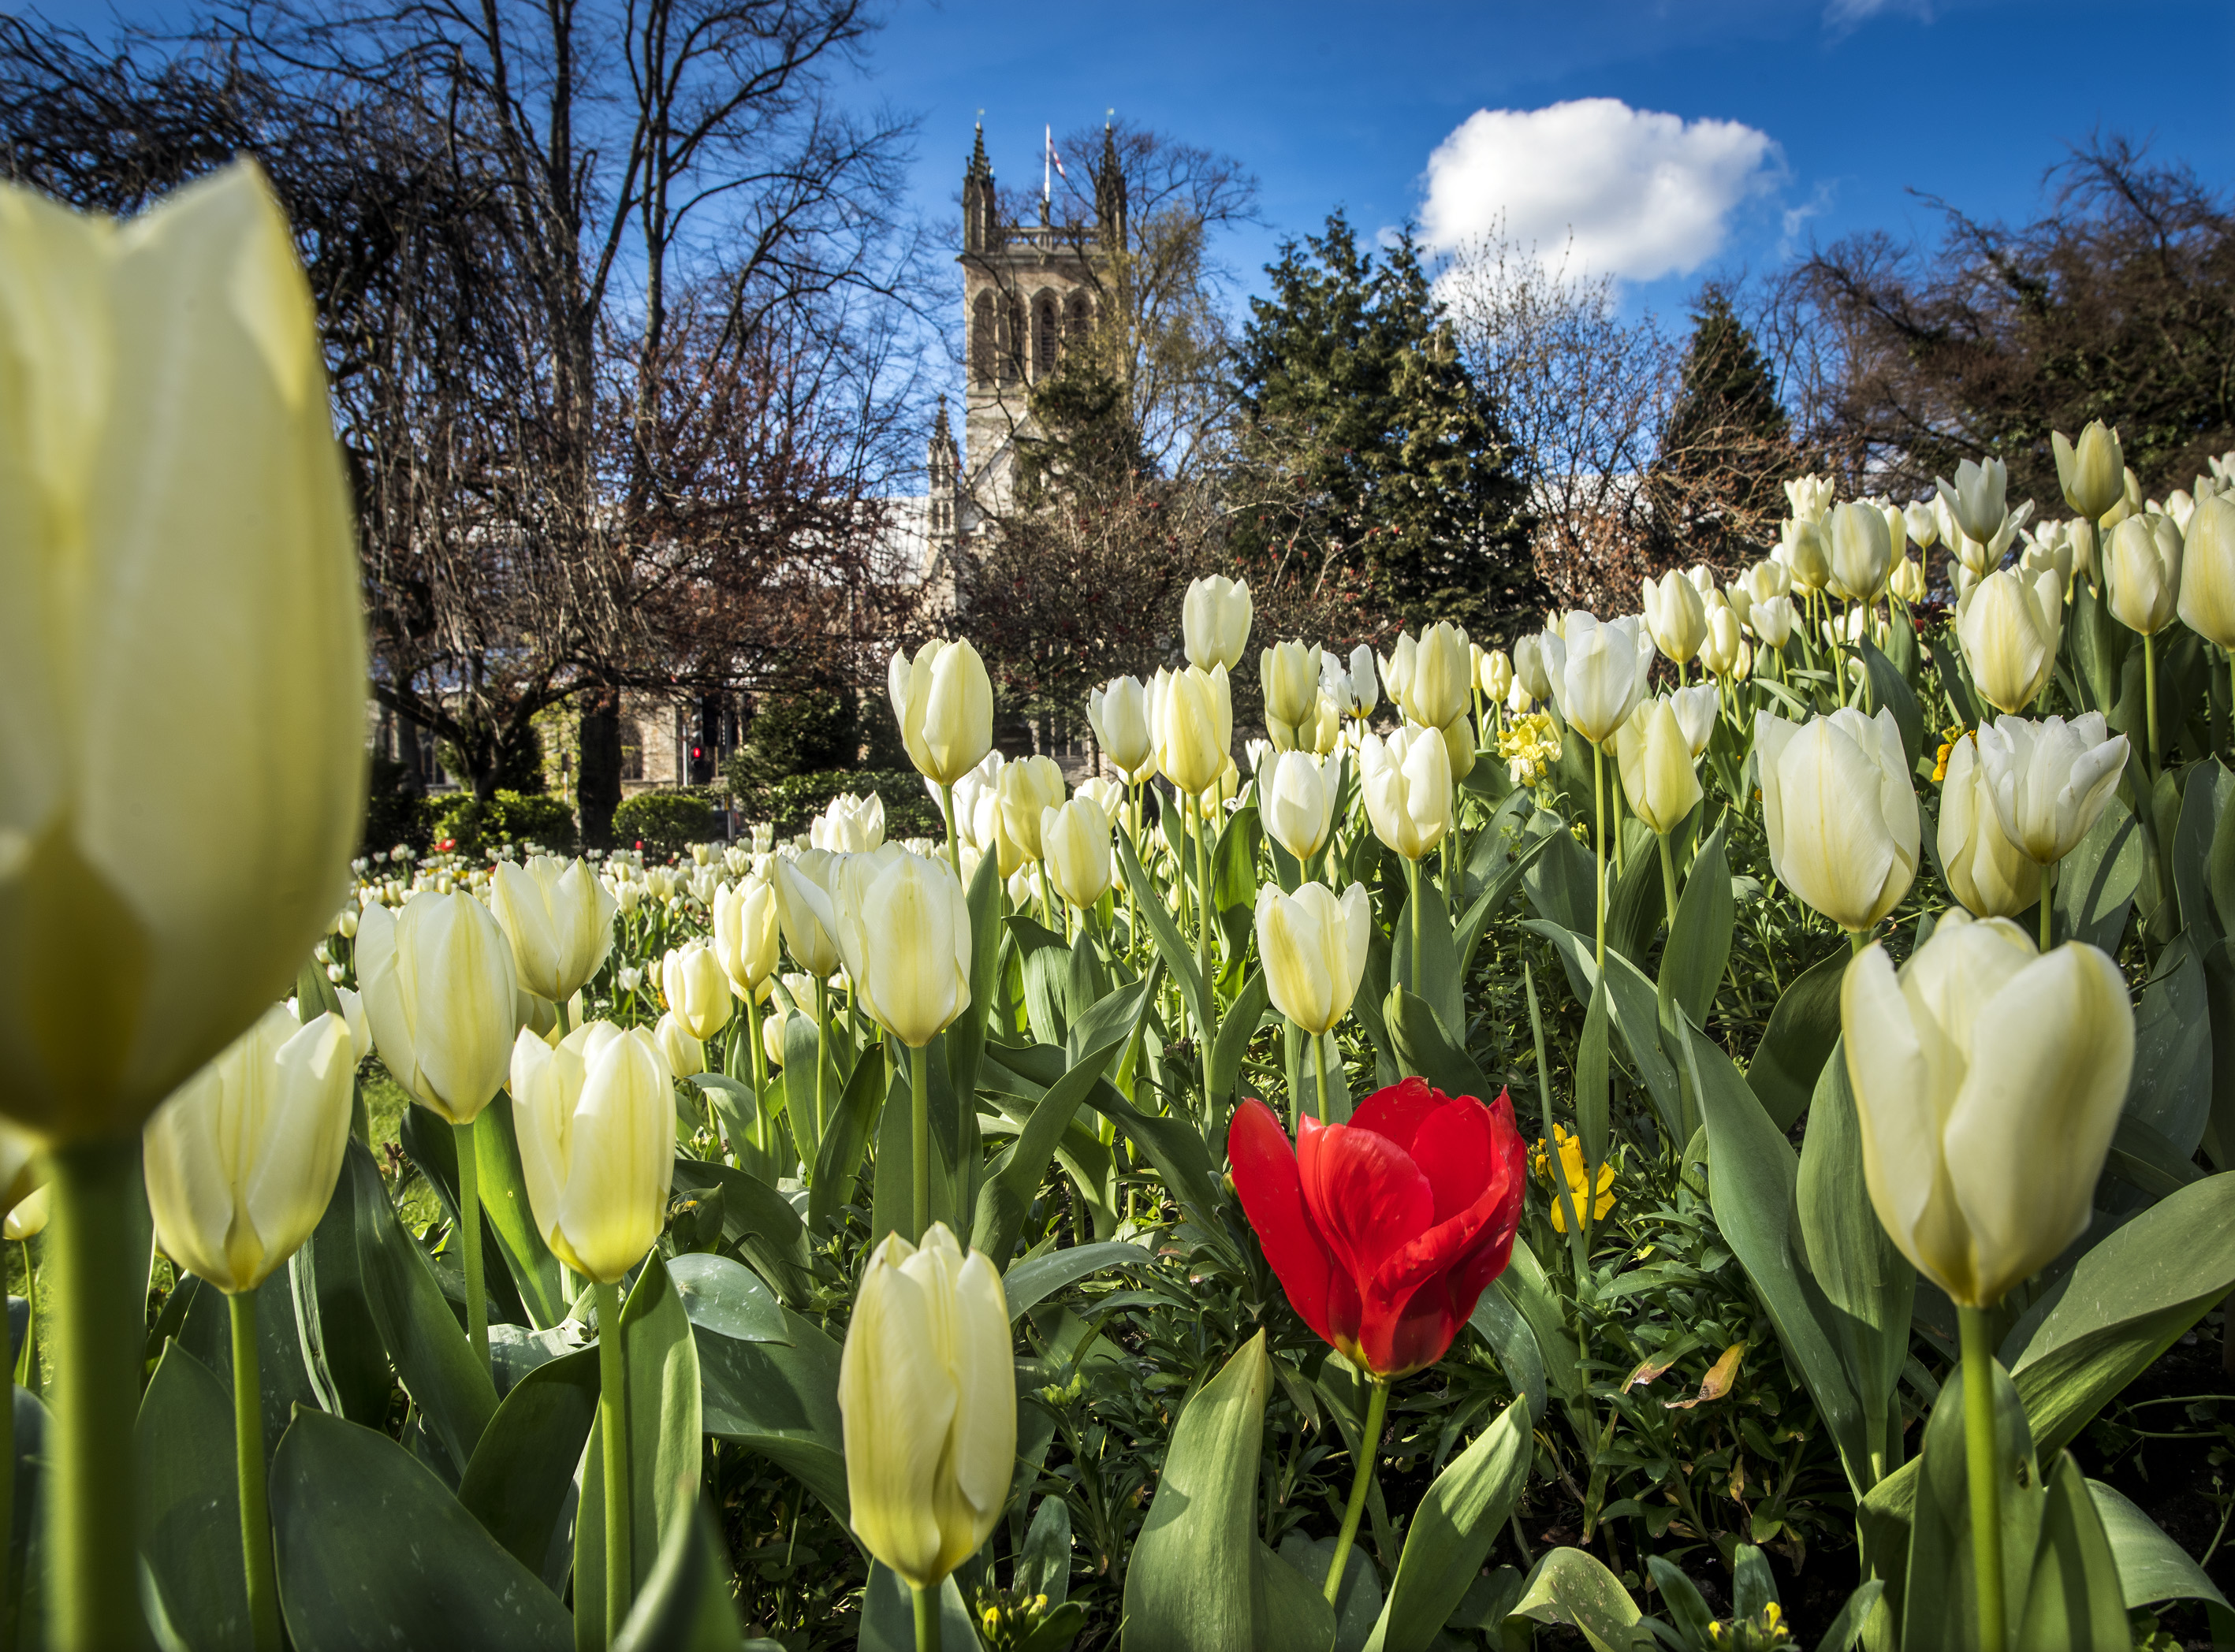 Images of tulips in Selby park